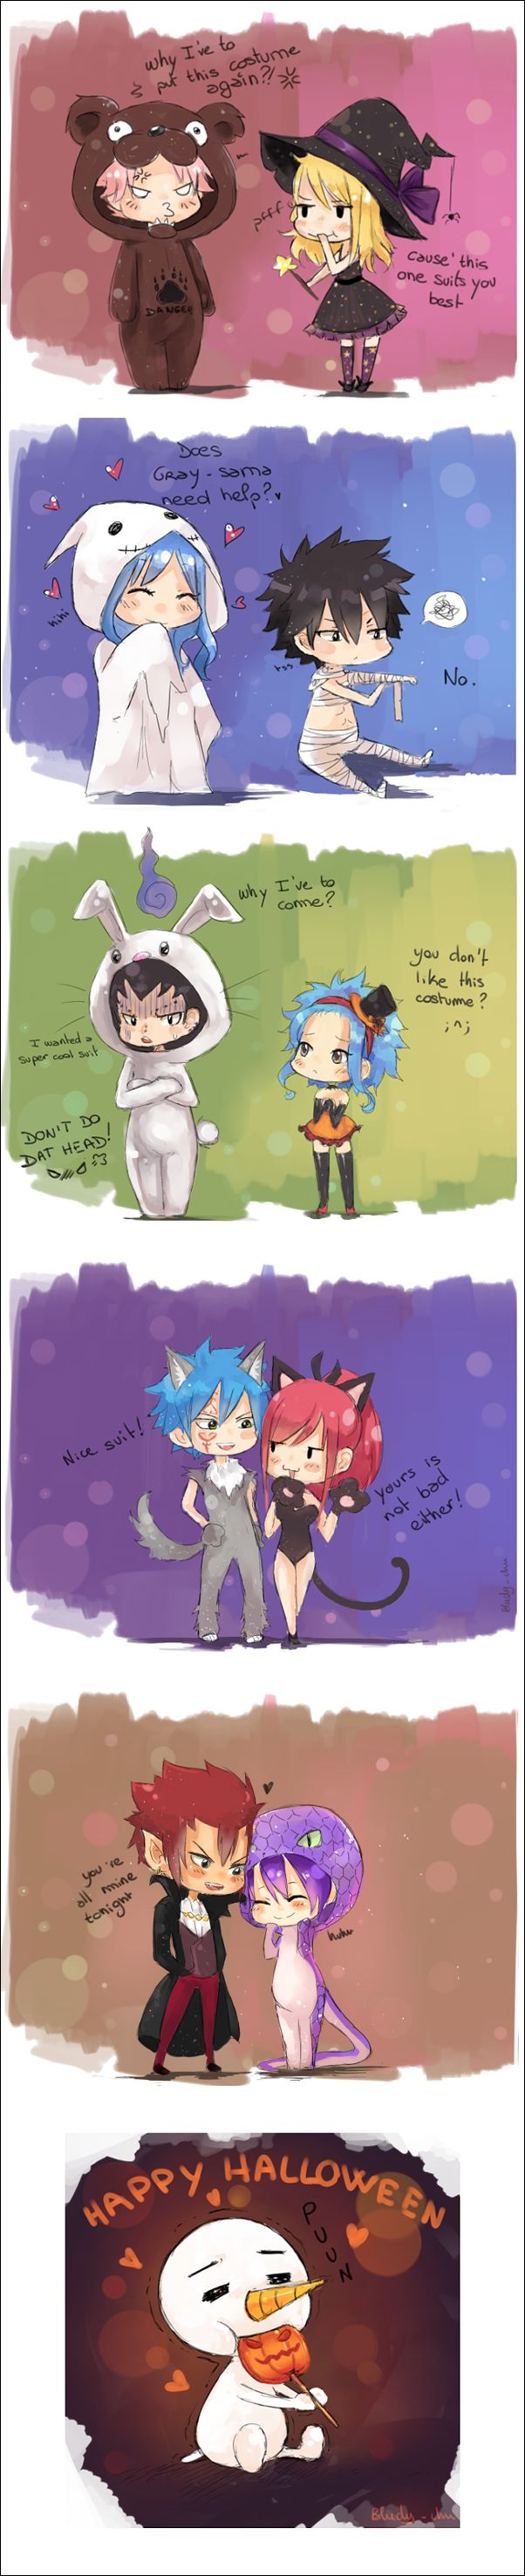 Fairy Tail - Natsu x Lucy, Gray x Juvia, Gajeel x Levy, Jellal x Erza, Cobra x Cinana - Happy halloween